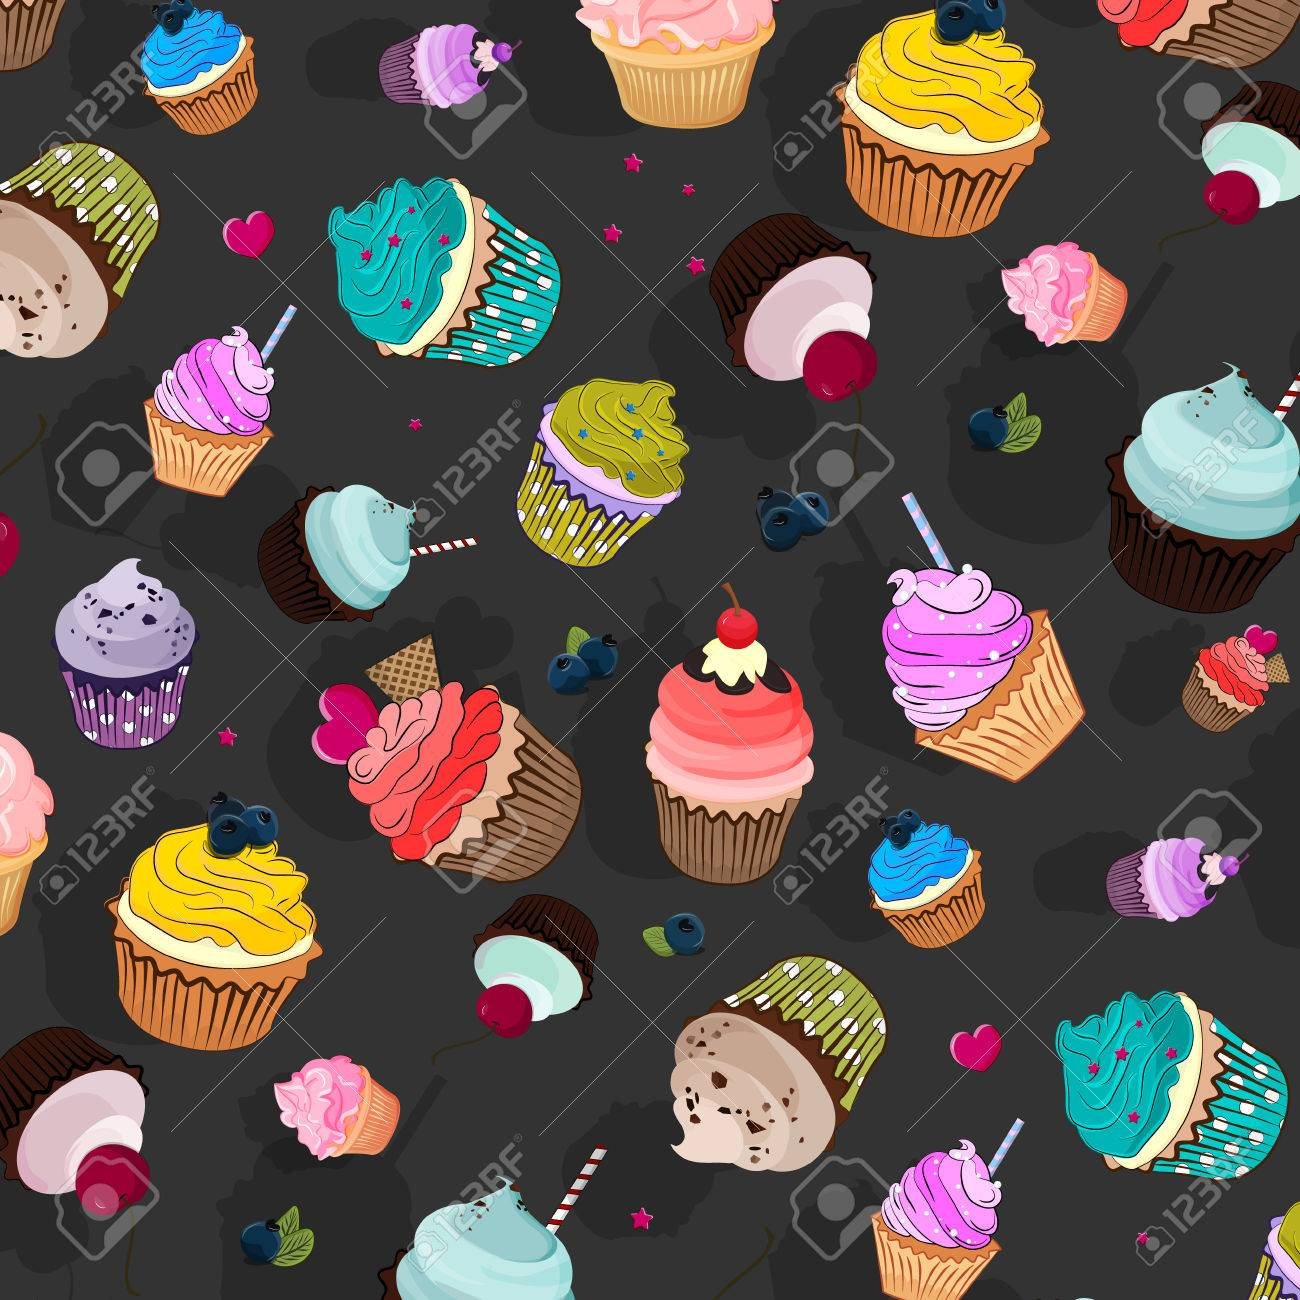 Cupcake Delicious Dessert Sweet Decorated Cakes With Muffin Cartoon Wallpaper Texture